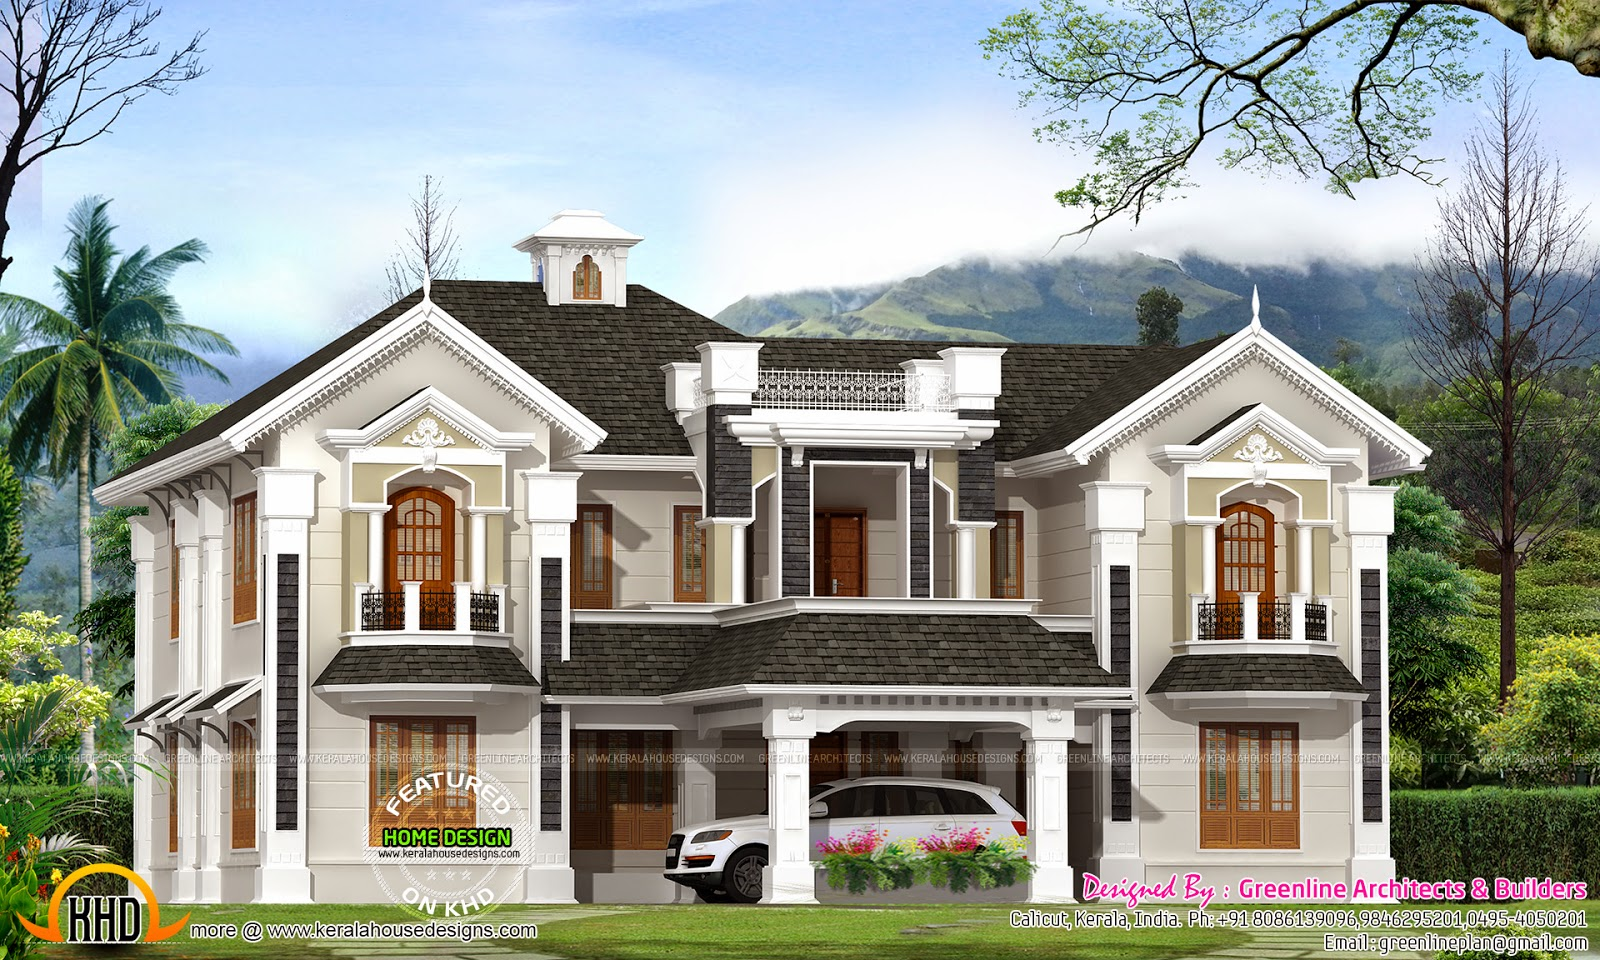 Colonial style house in Kerala - Kerala home design and